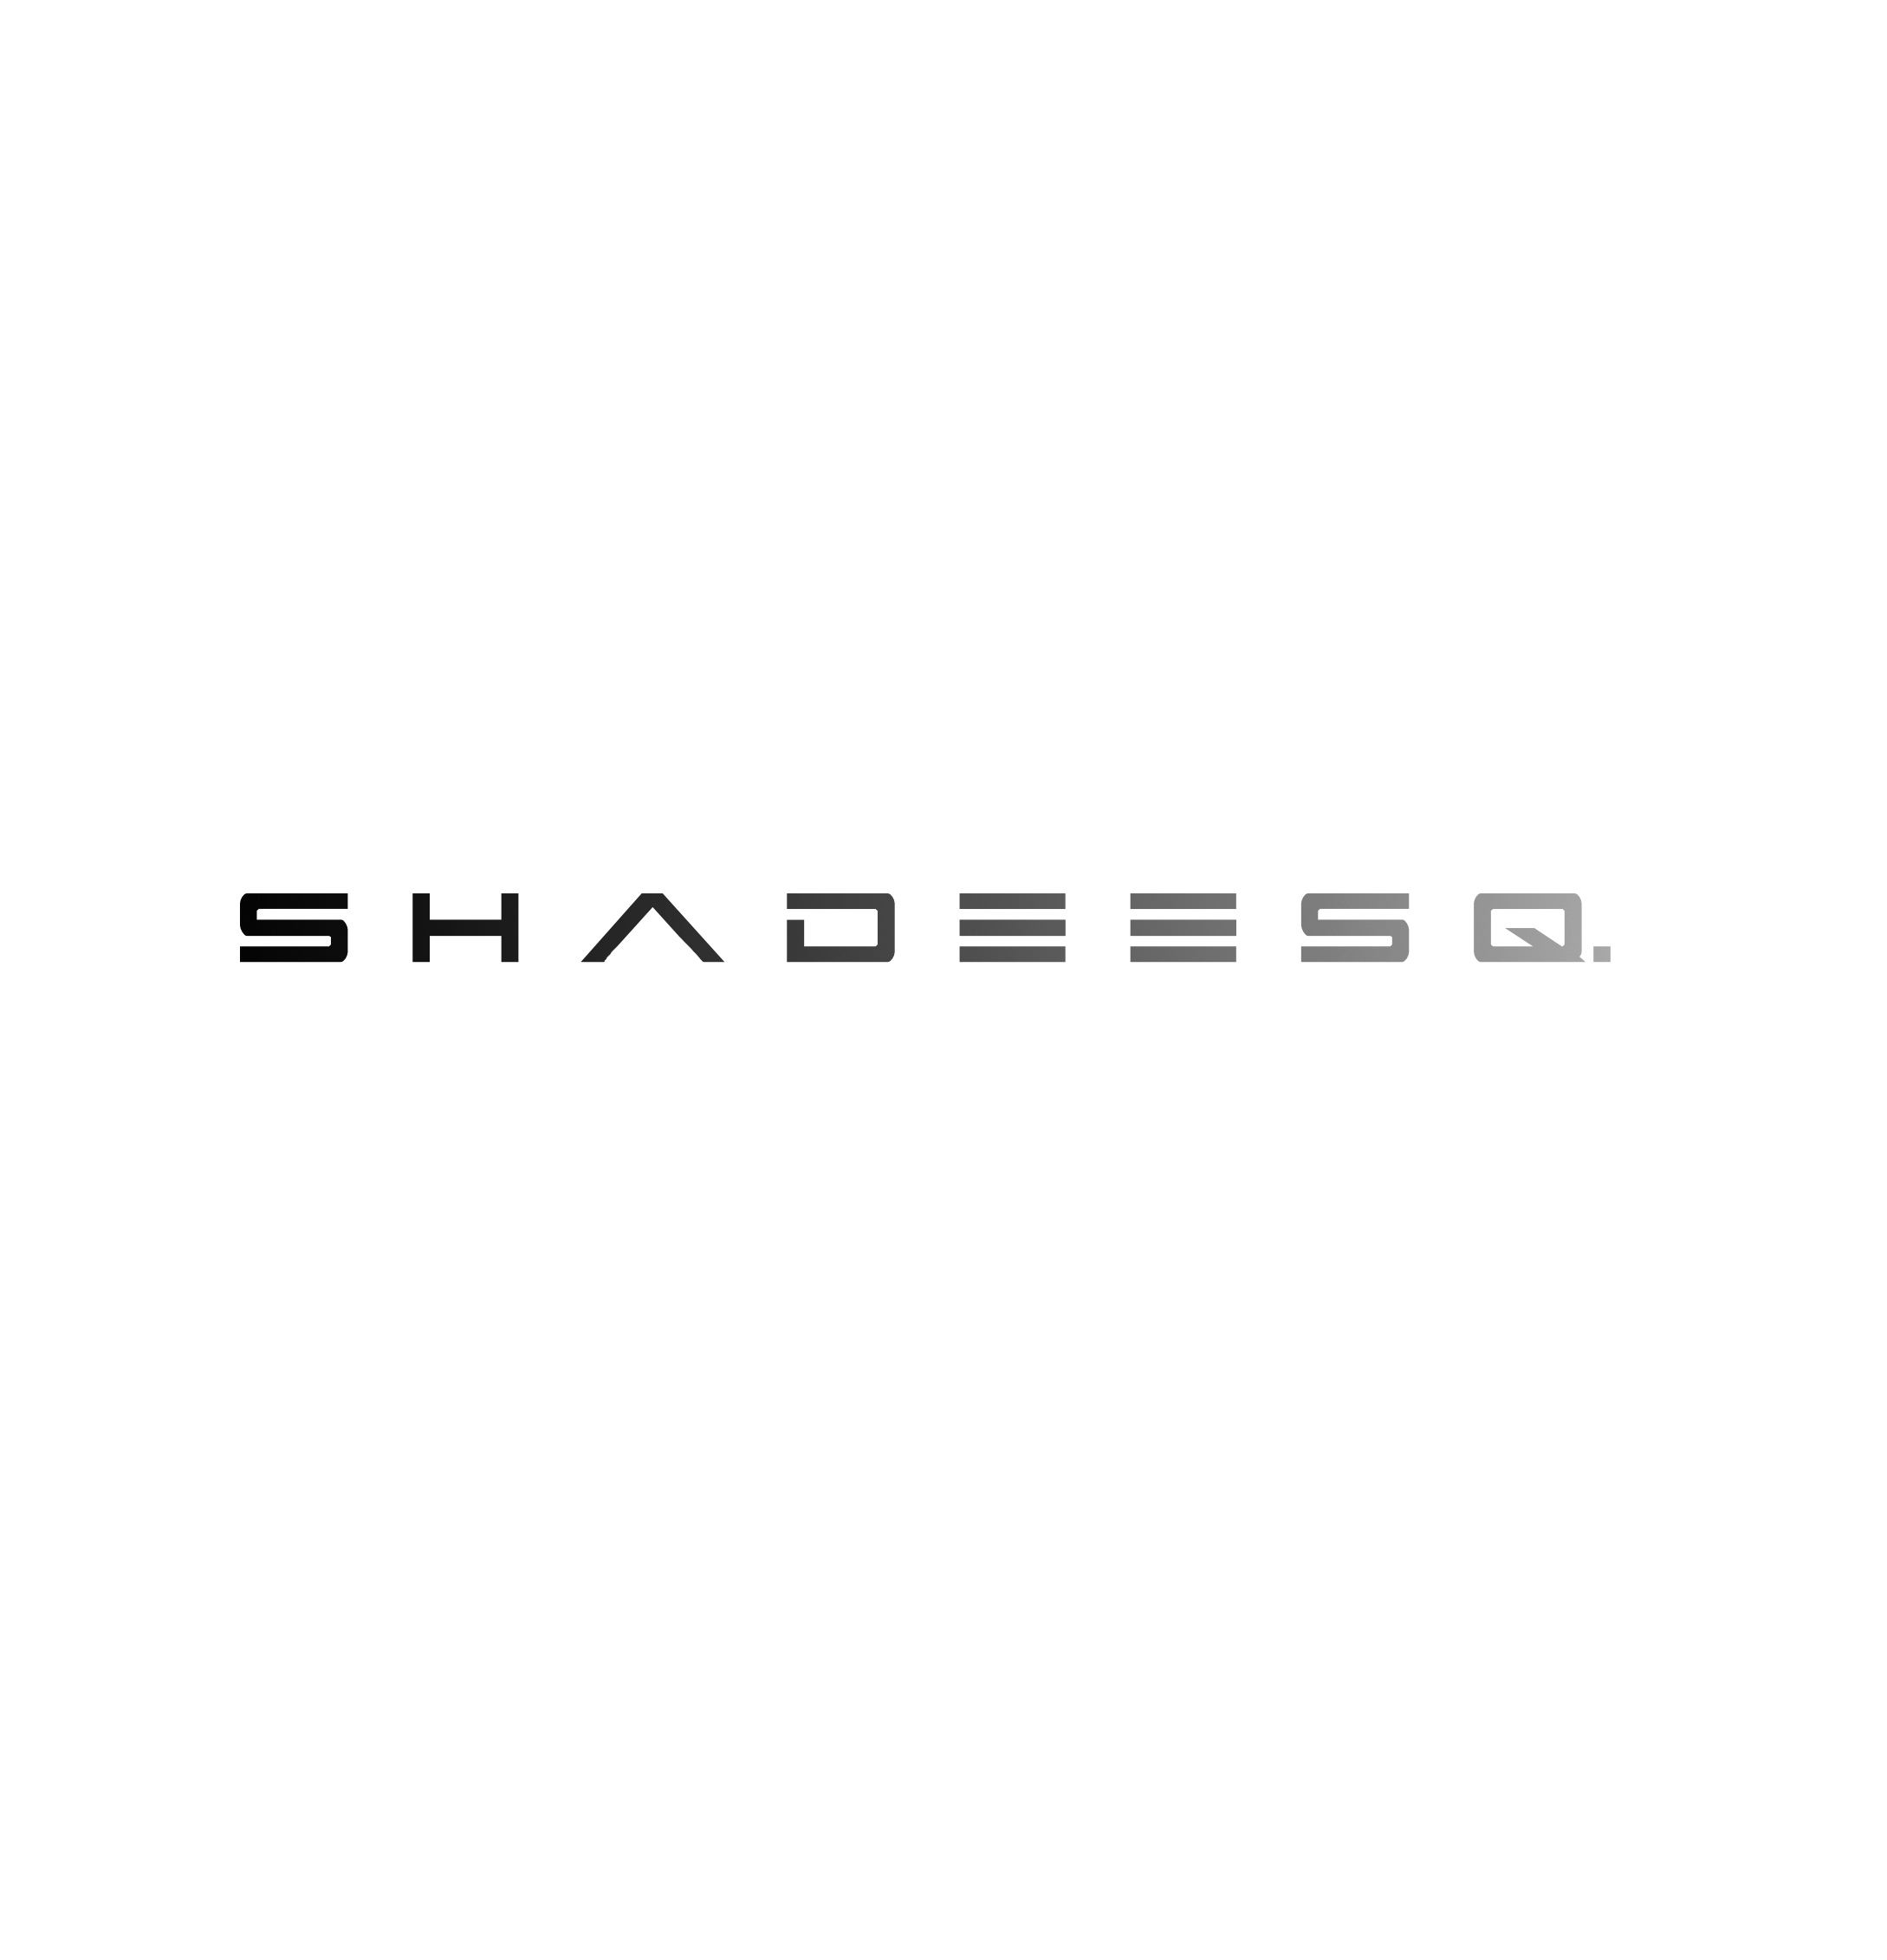 Shade Esq-Logo Original.png